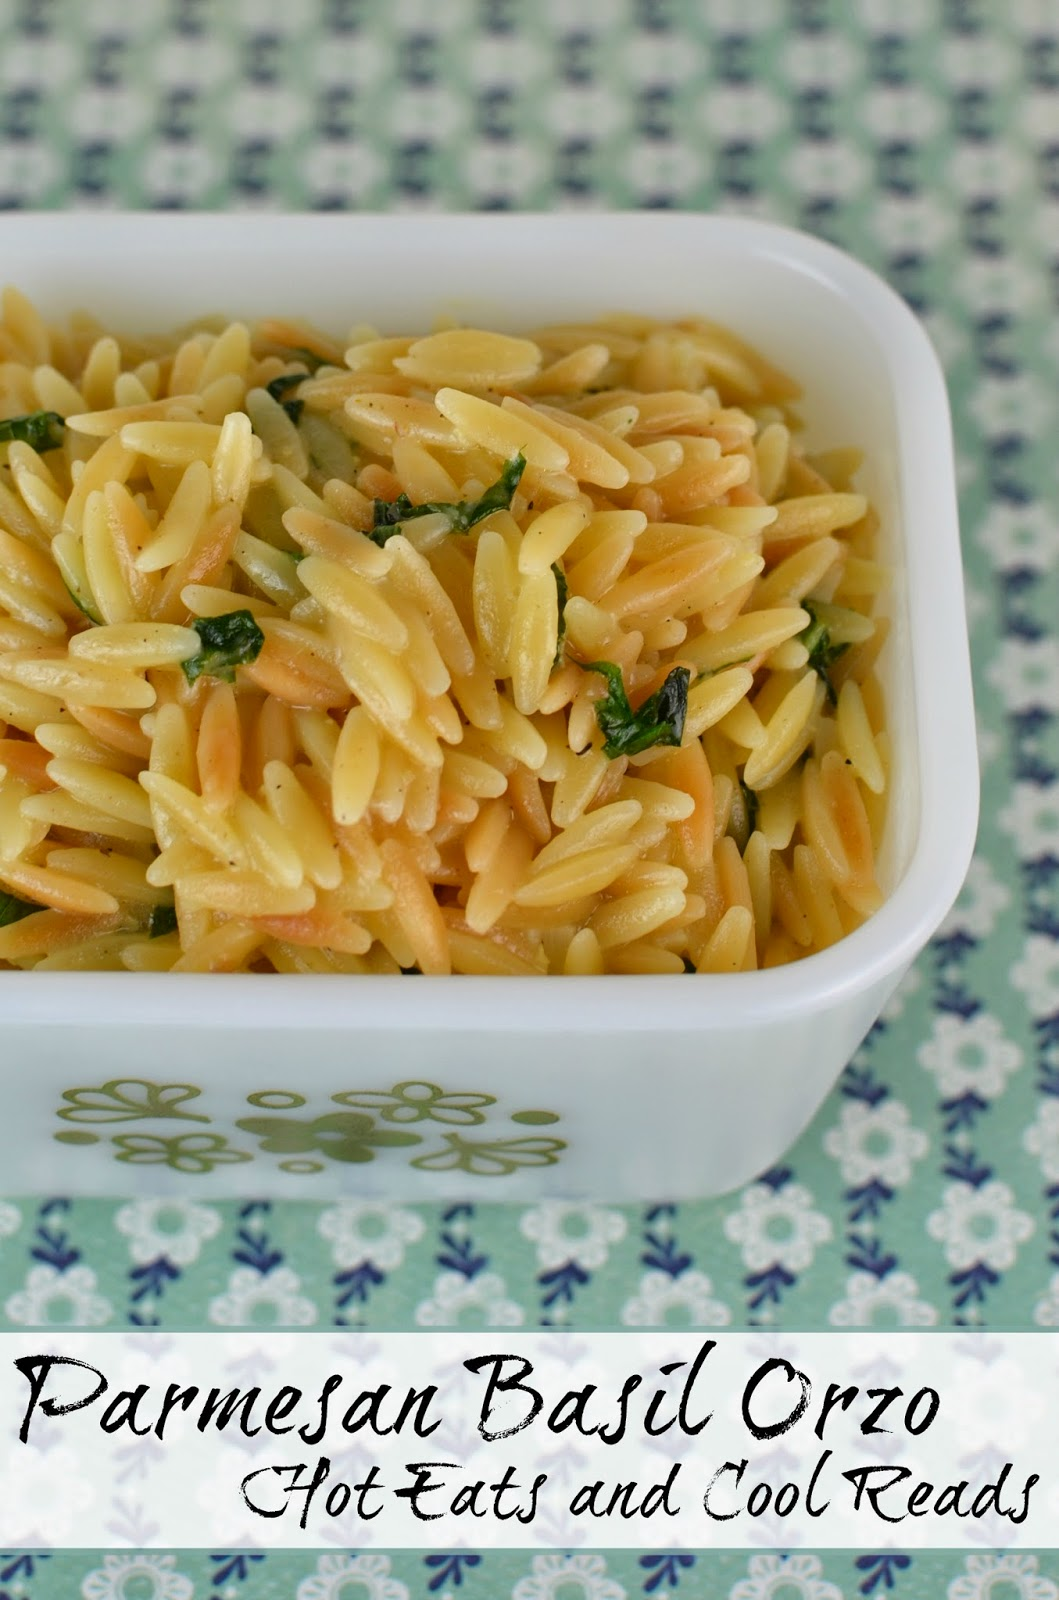 Easy side for any meal! Tons of flavor and so delicious! The kids love it too! Parmesan Basil Orzo from Hot Eats and Cool Reads